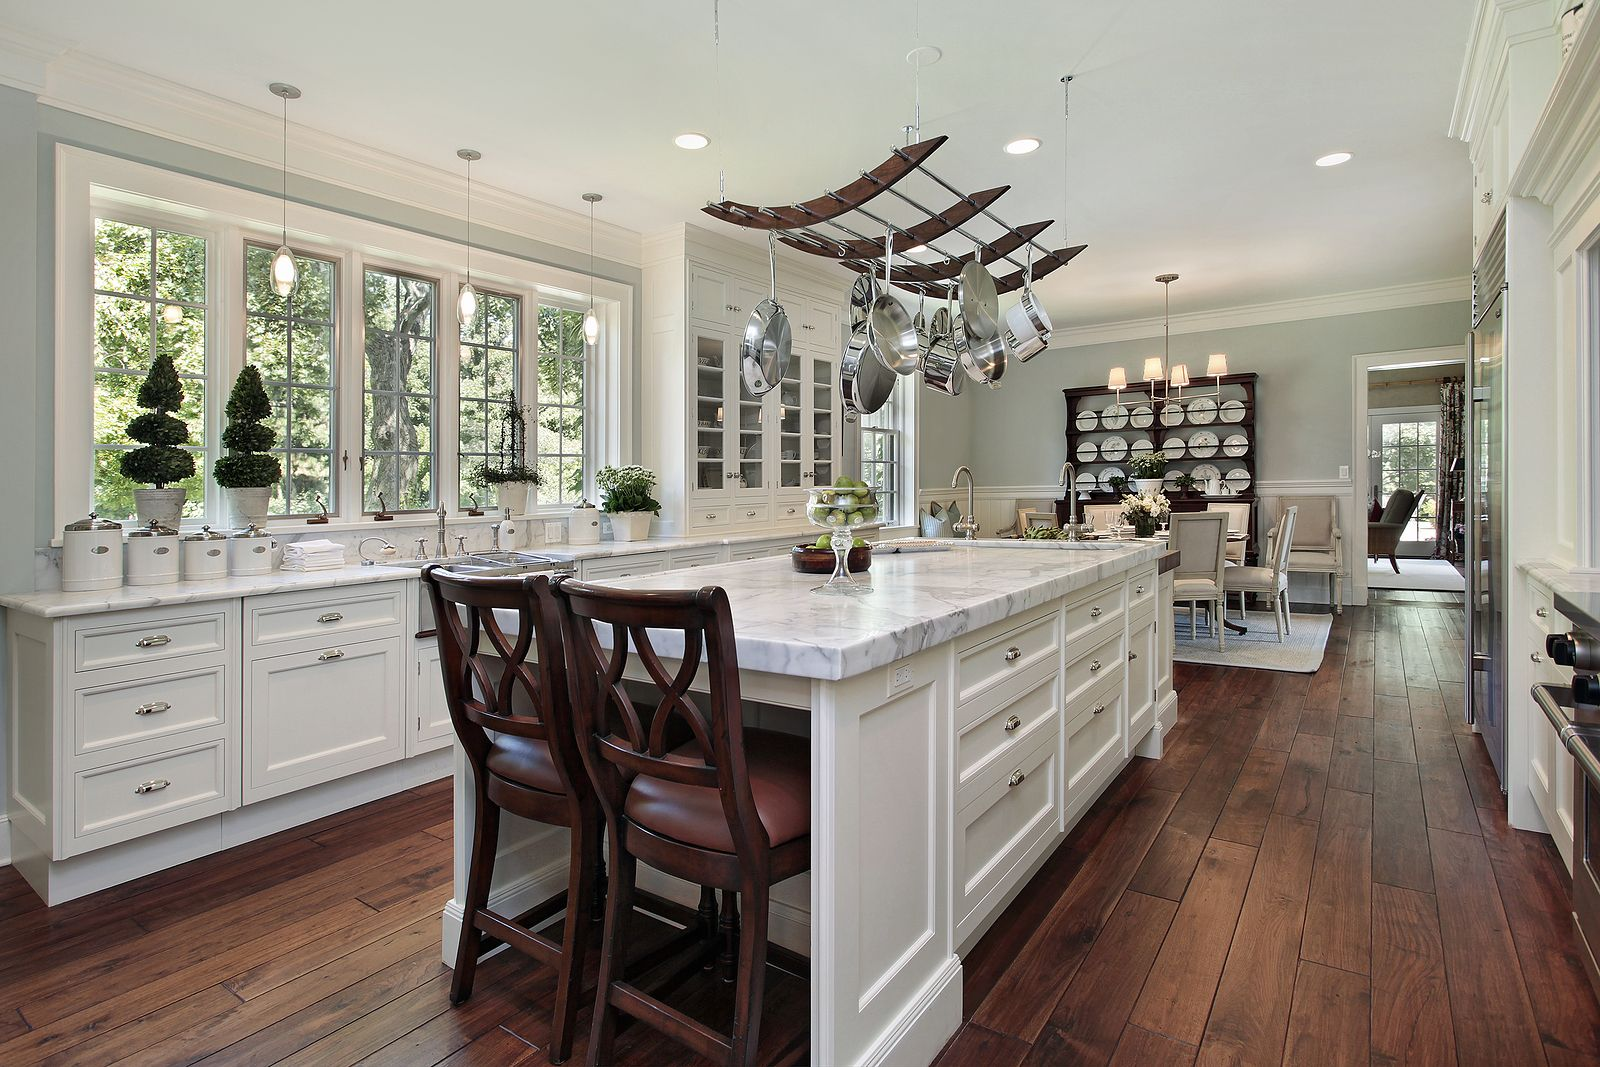 White Kitchen Floor Dark Floors In Beach Houses Kitchen Decorating Design Ideas With